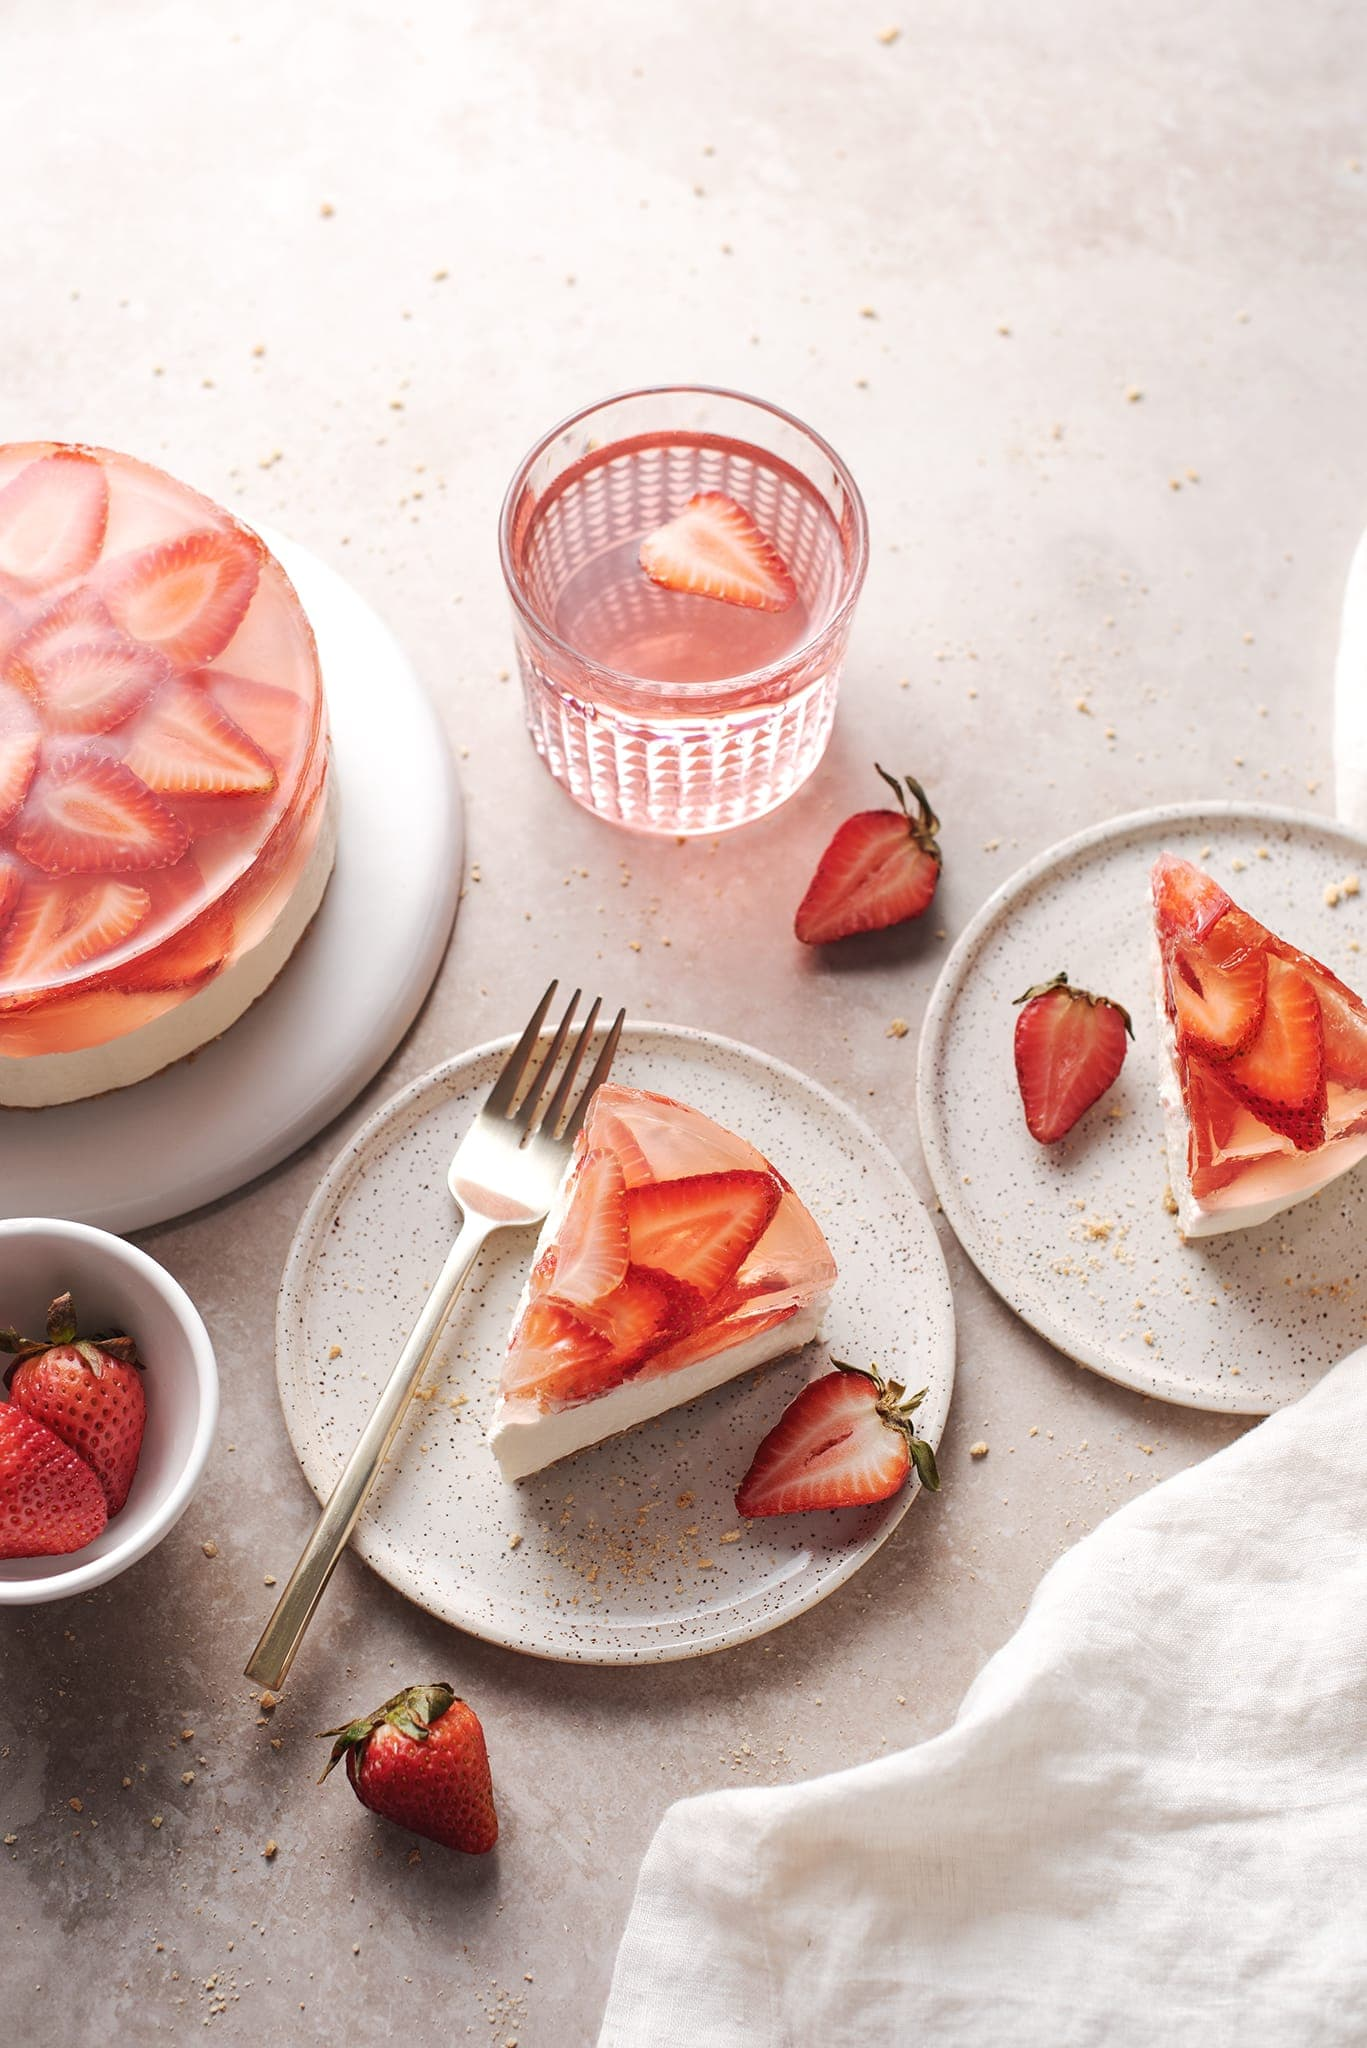 Slices of strawberry jelly cheesecake on small plates